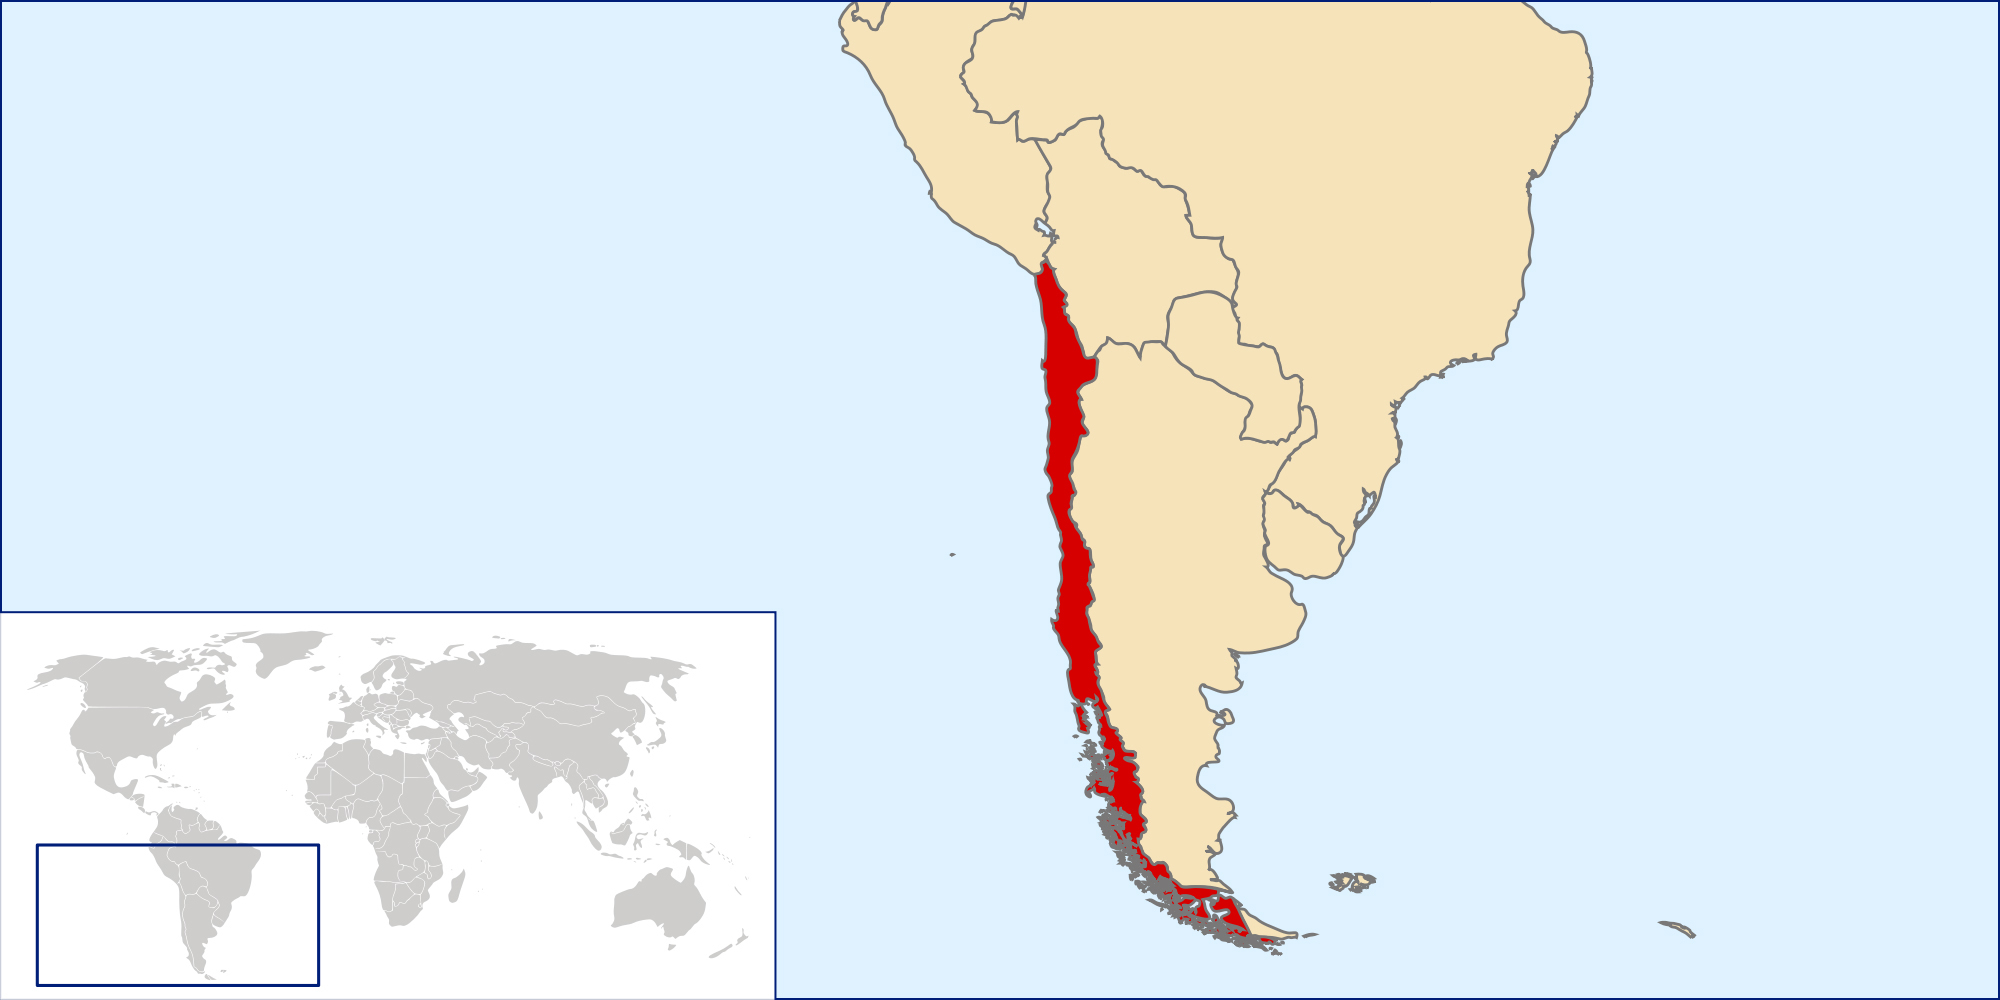 Chile Location Map Location Map Of Chile Vidianicom Maps Of - Chile location